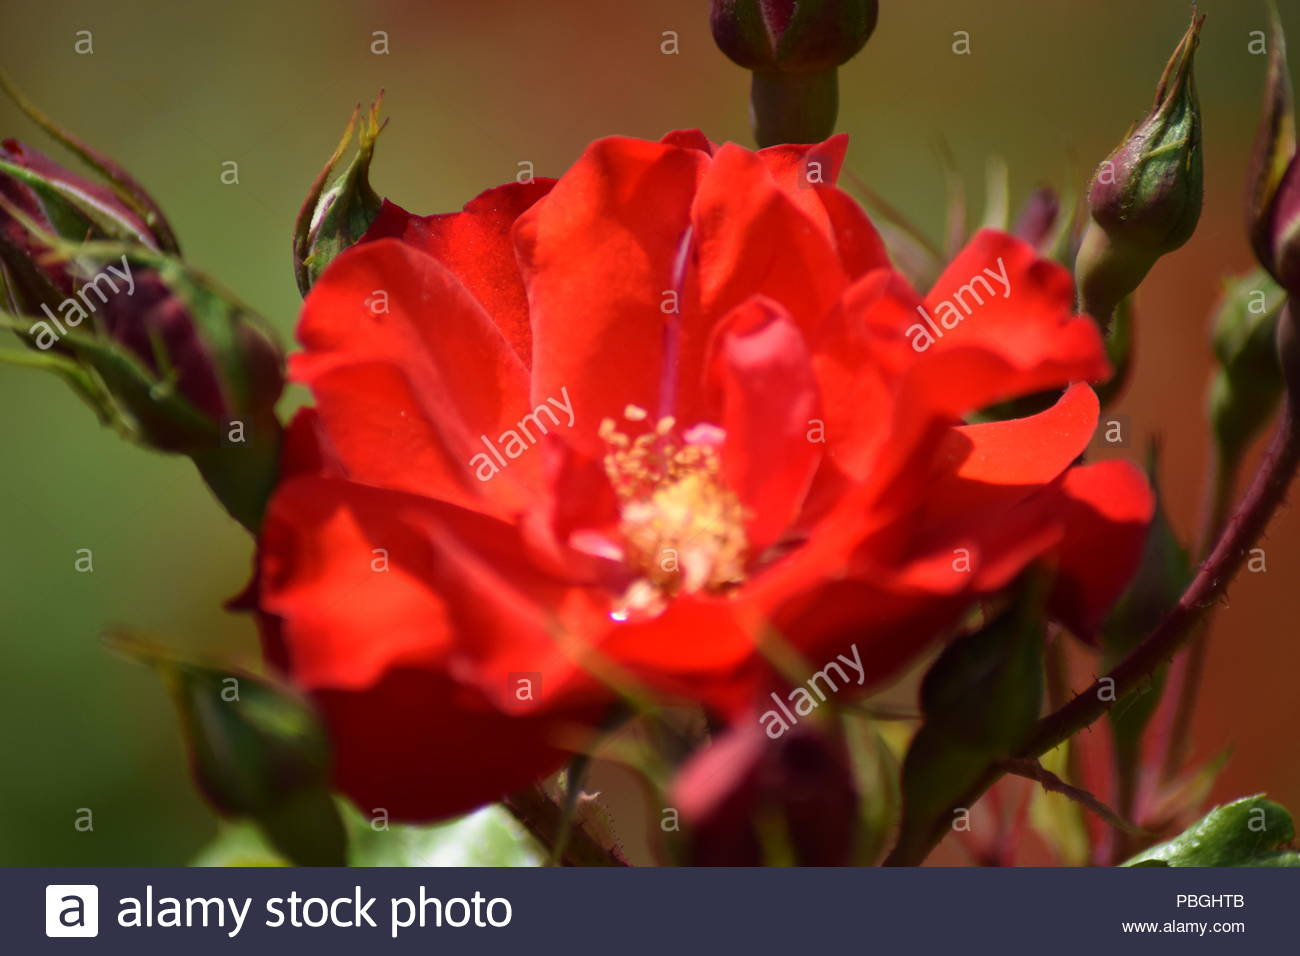 Roses Of Primary Colors Stock Photo 213650875 Alamy